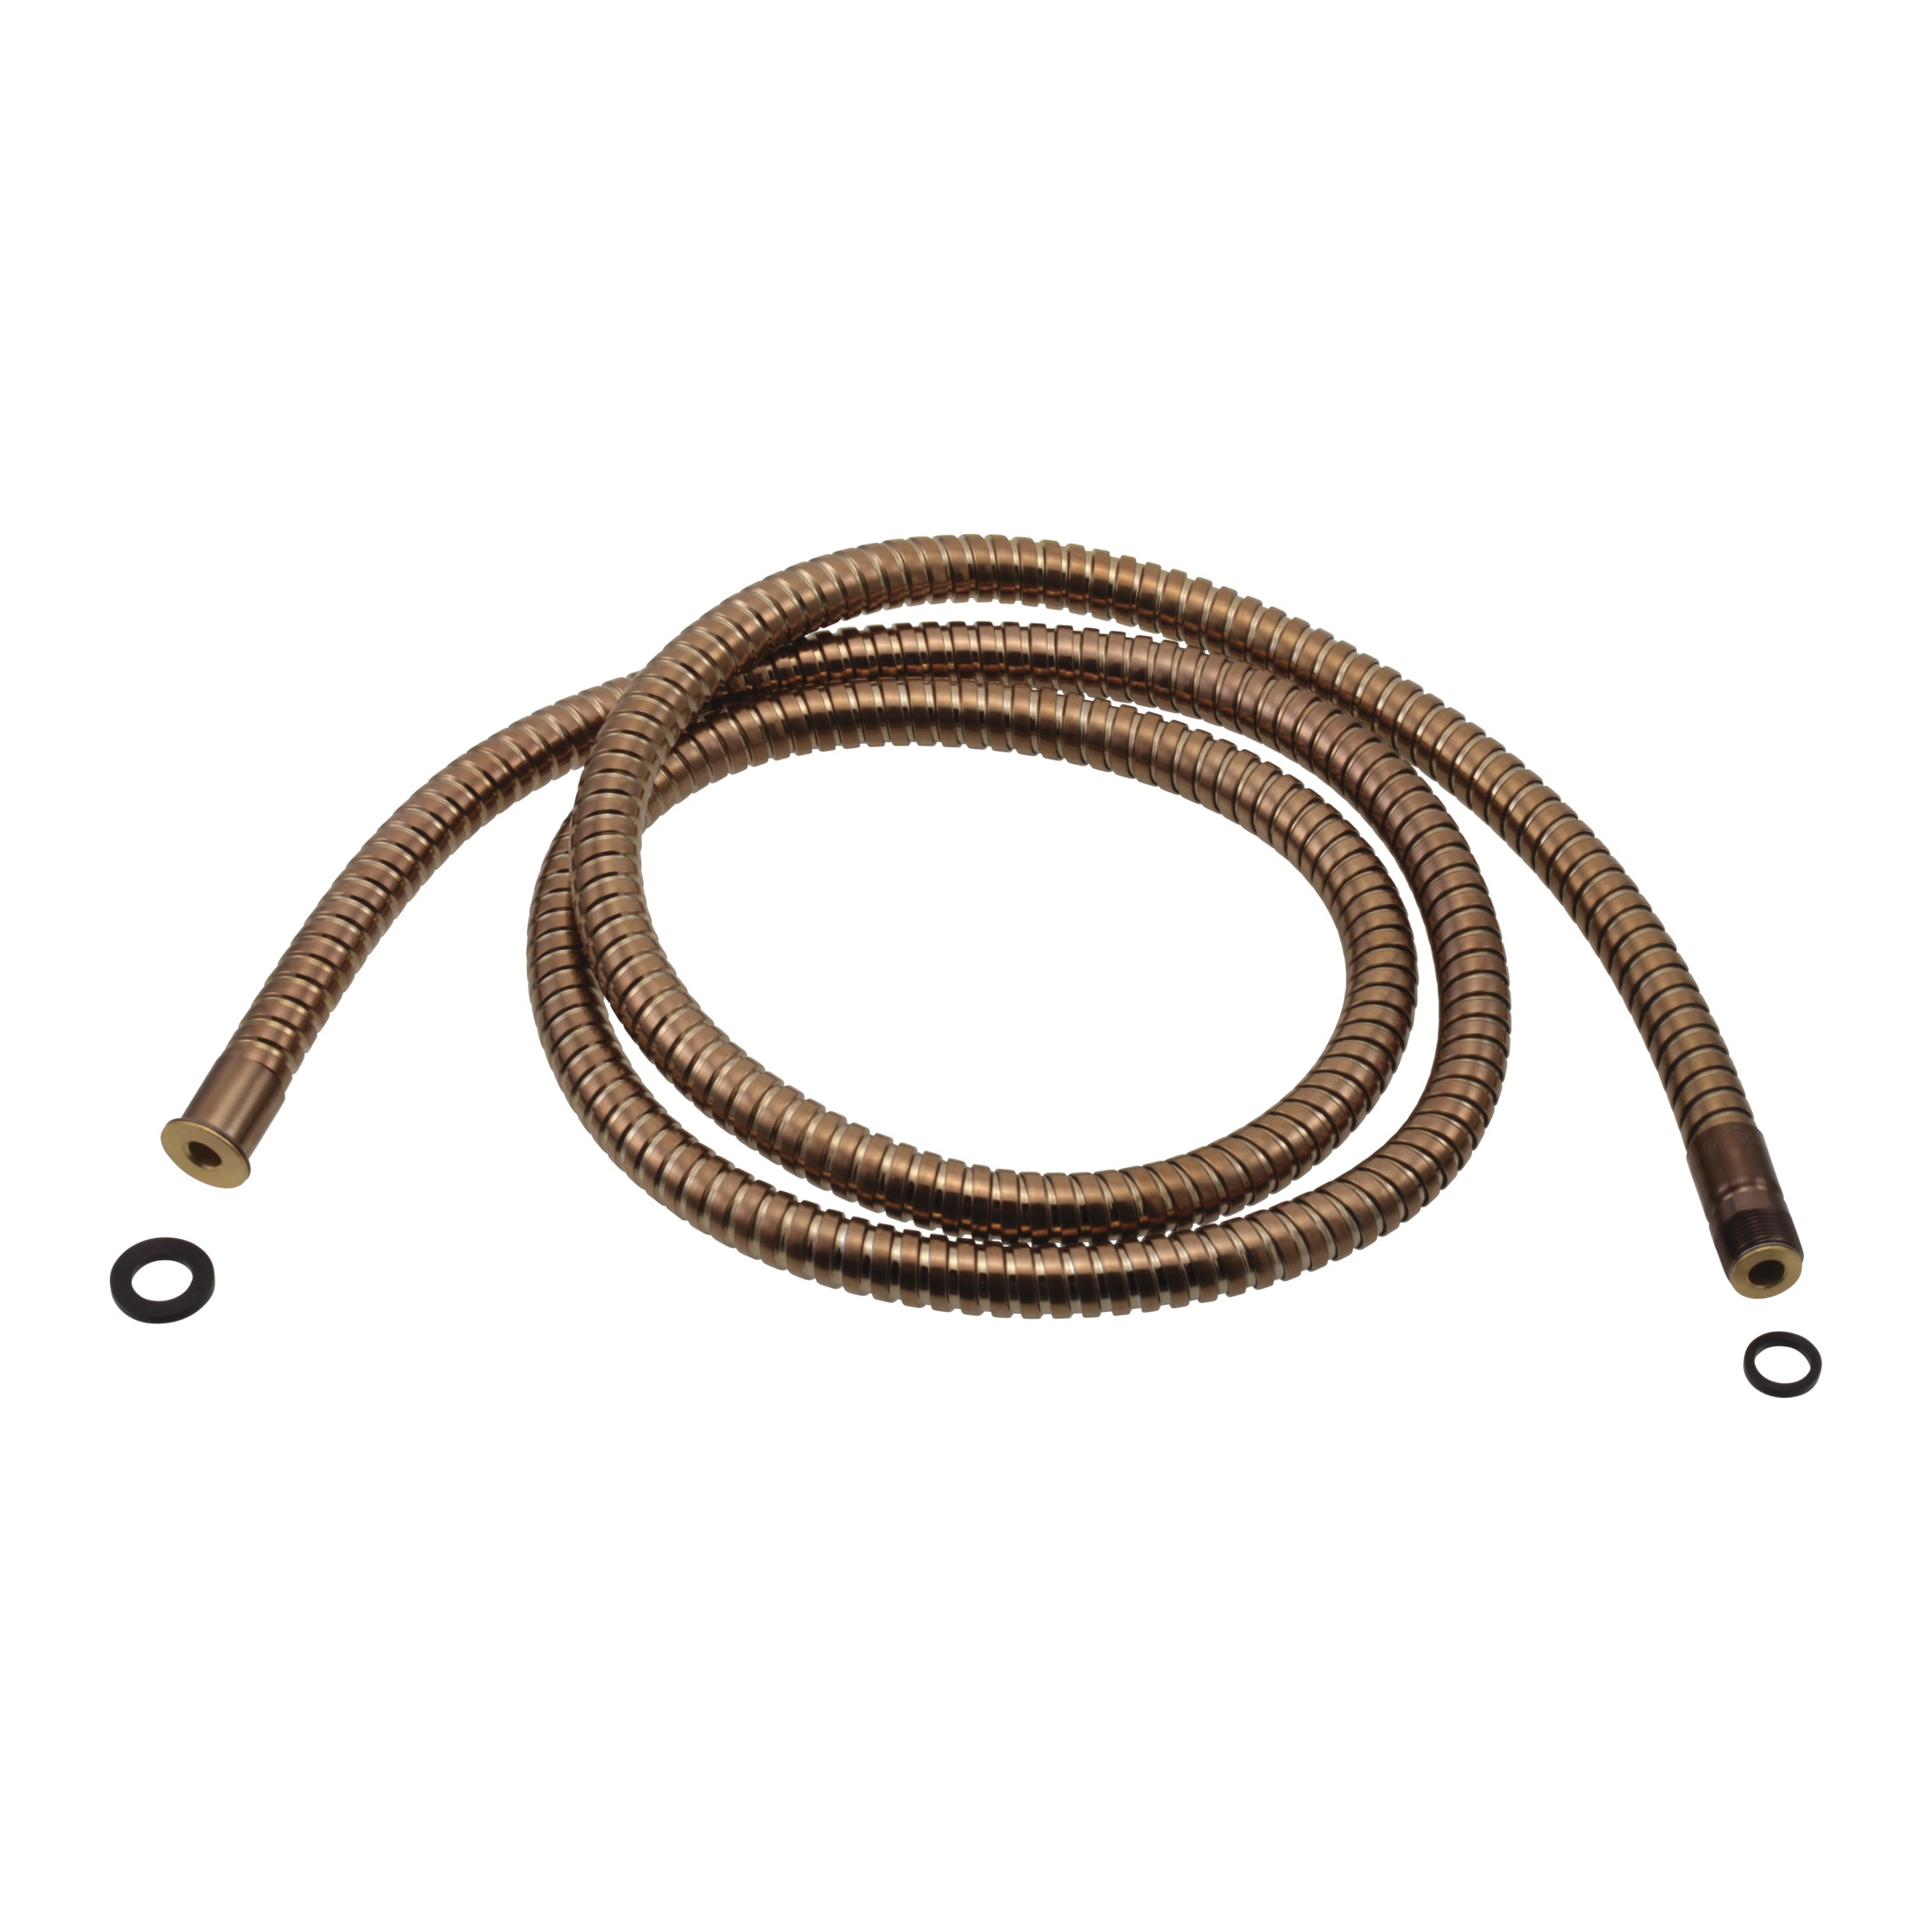 Brizo® RP40664BZ Roman Tub Hose and Gasket, 59 in L, Import